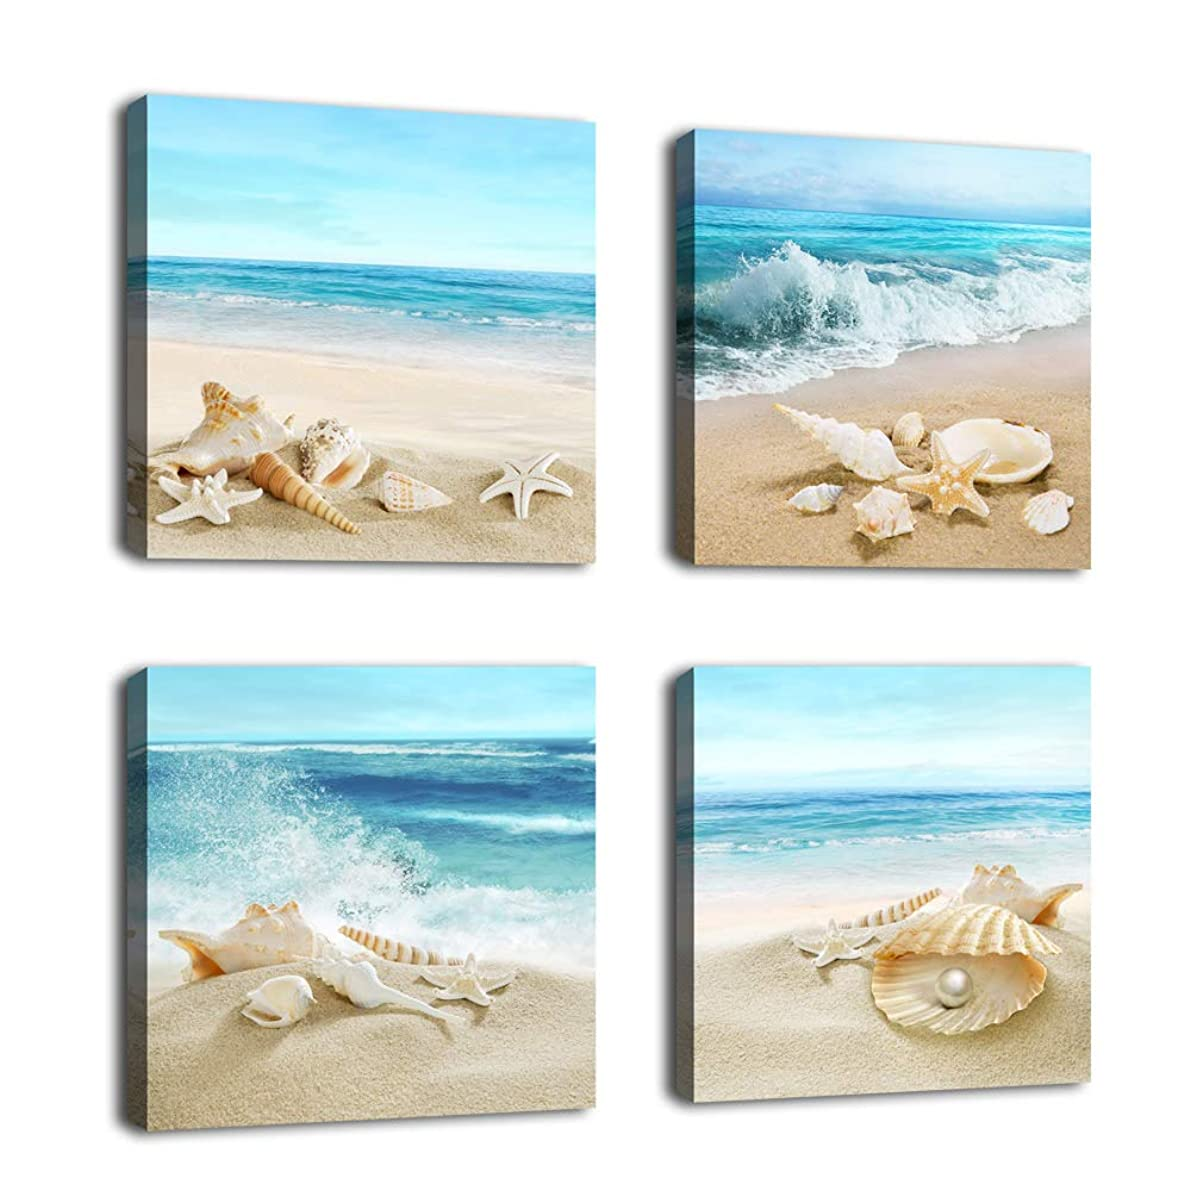 Canvas Wall Art Seashell Starfish on Beach Picture Blue Canvas Artwork Turquoise Contemporary Wall Art Prints for Bathroom Bedroom Living Room Decoration Office Wall Decor 12